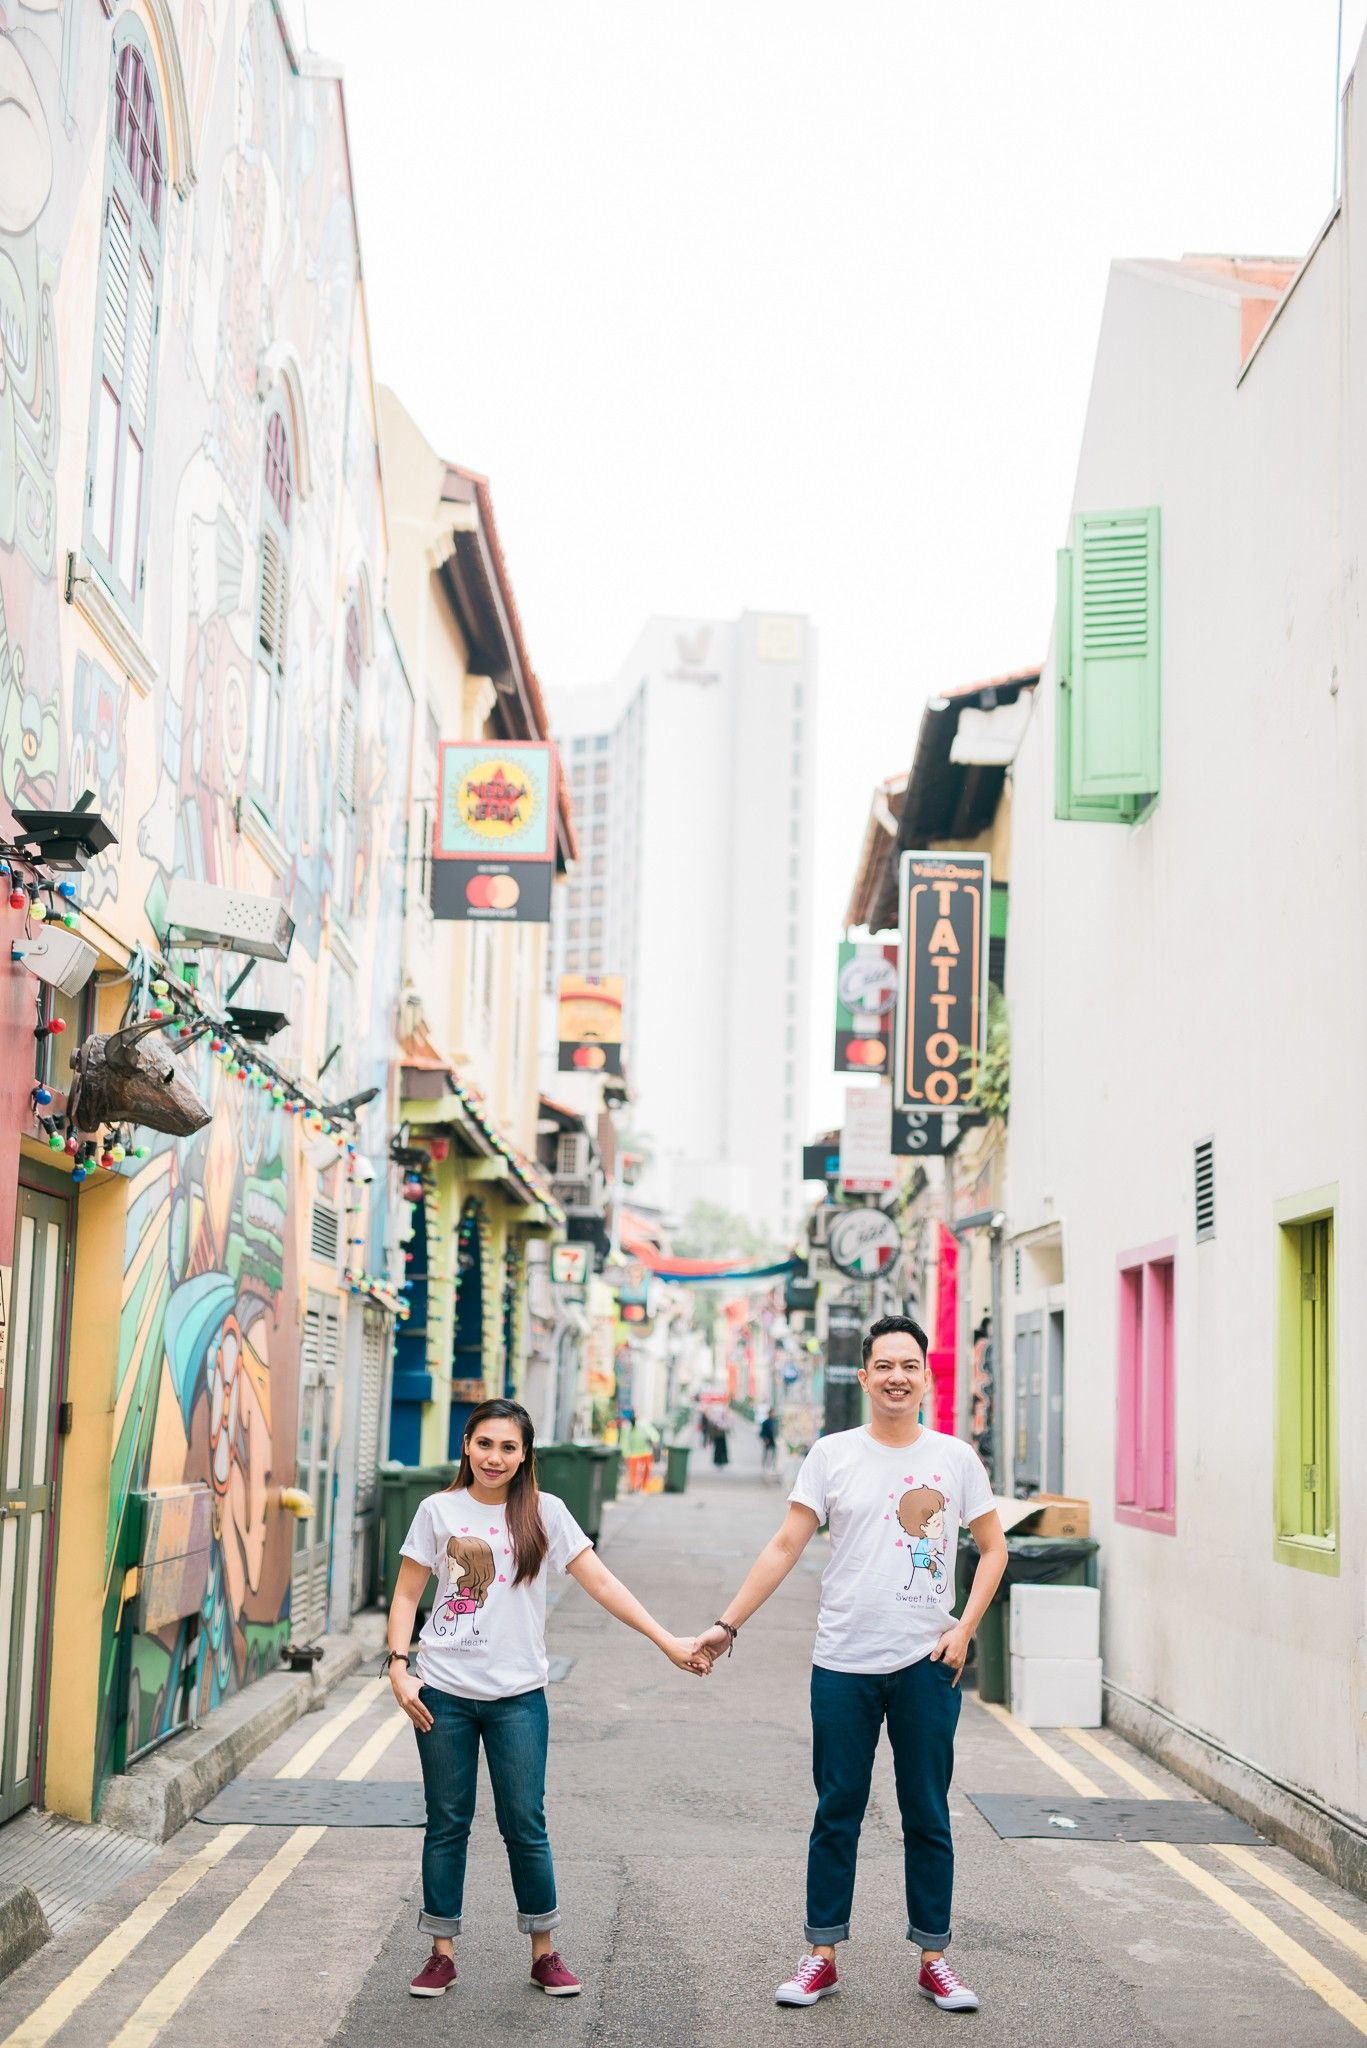 Pin by Elgietoy Mina on HAJI LANE SINGAPORE PRE WEDDING